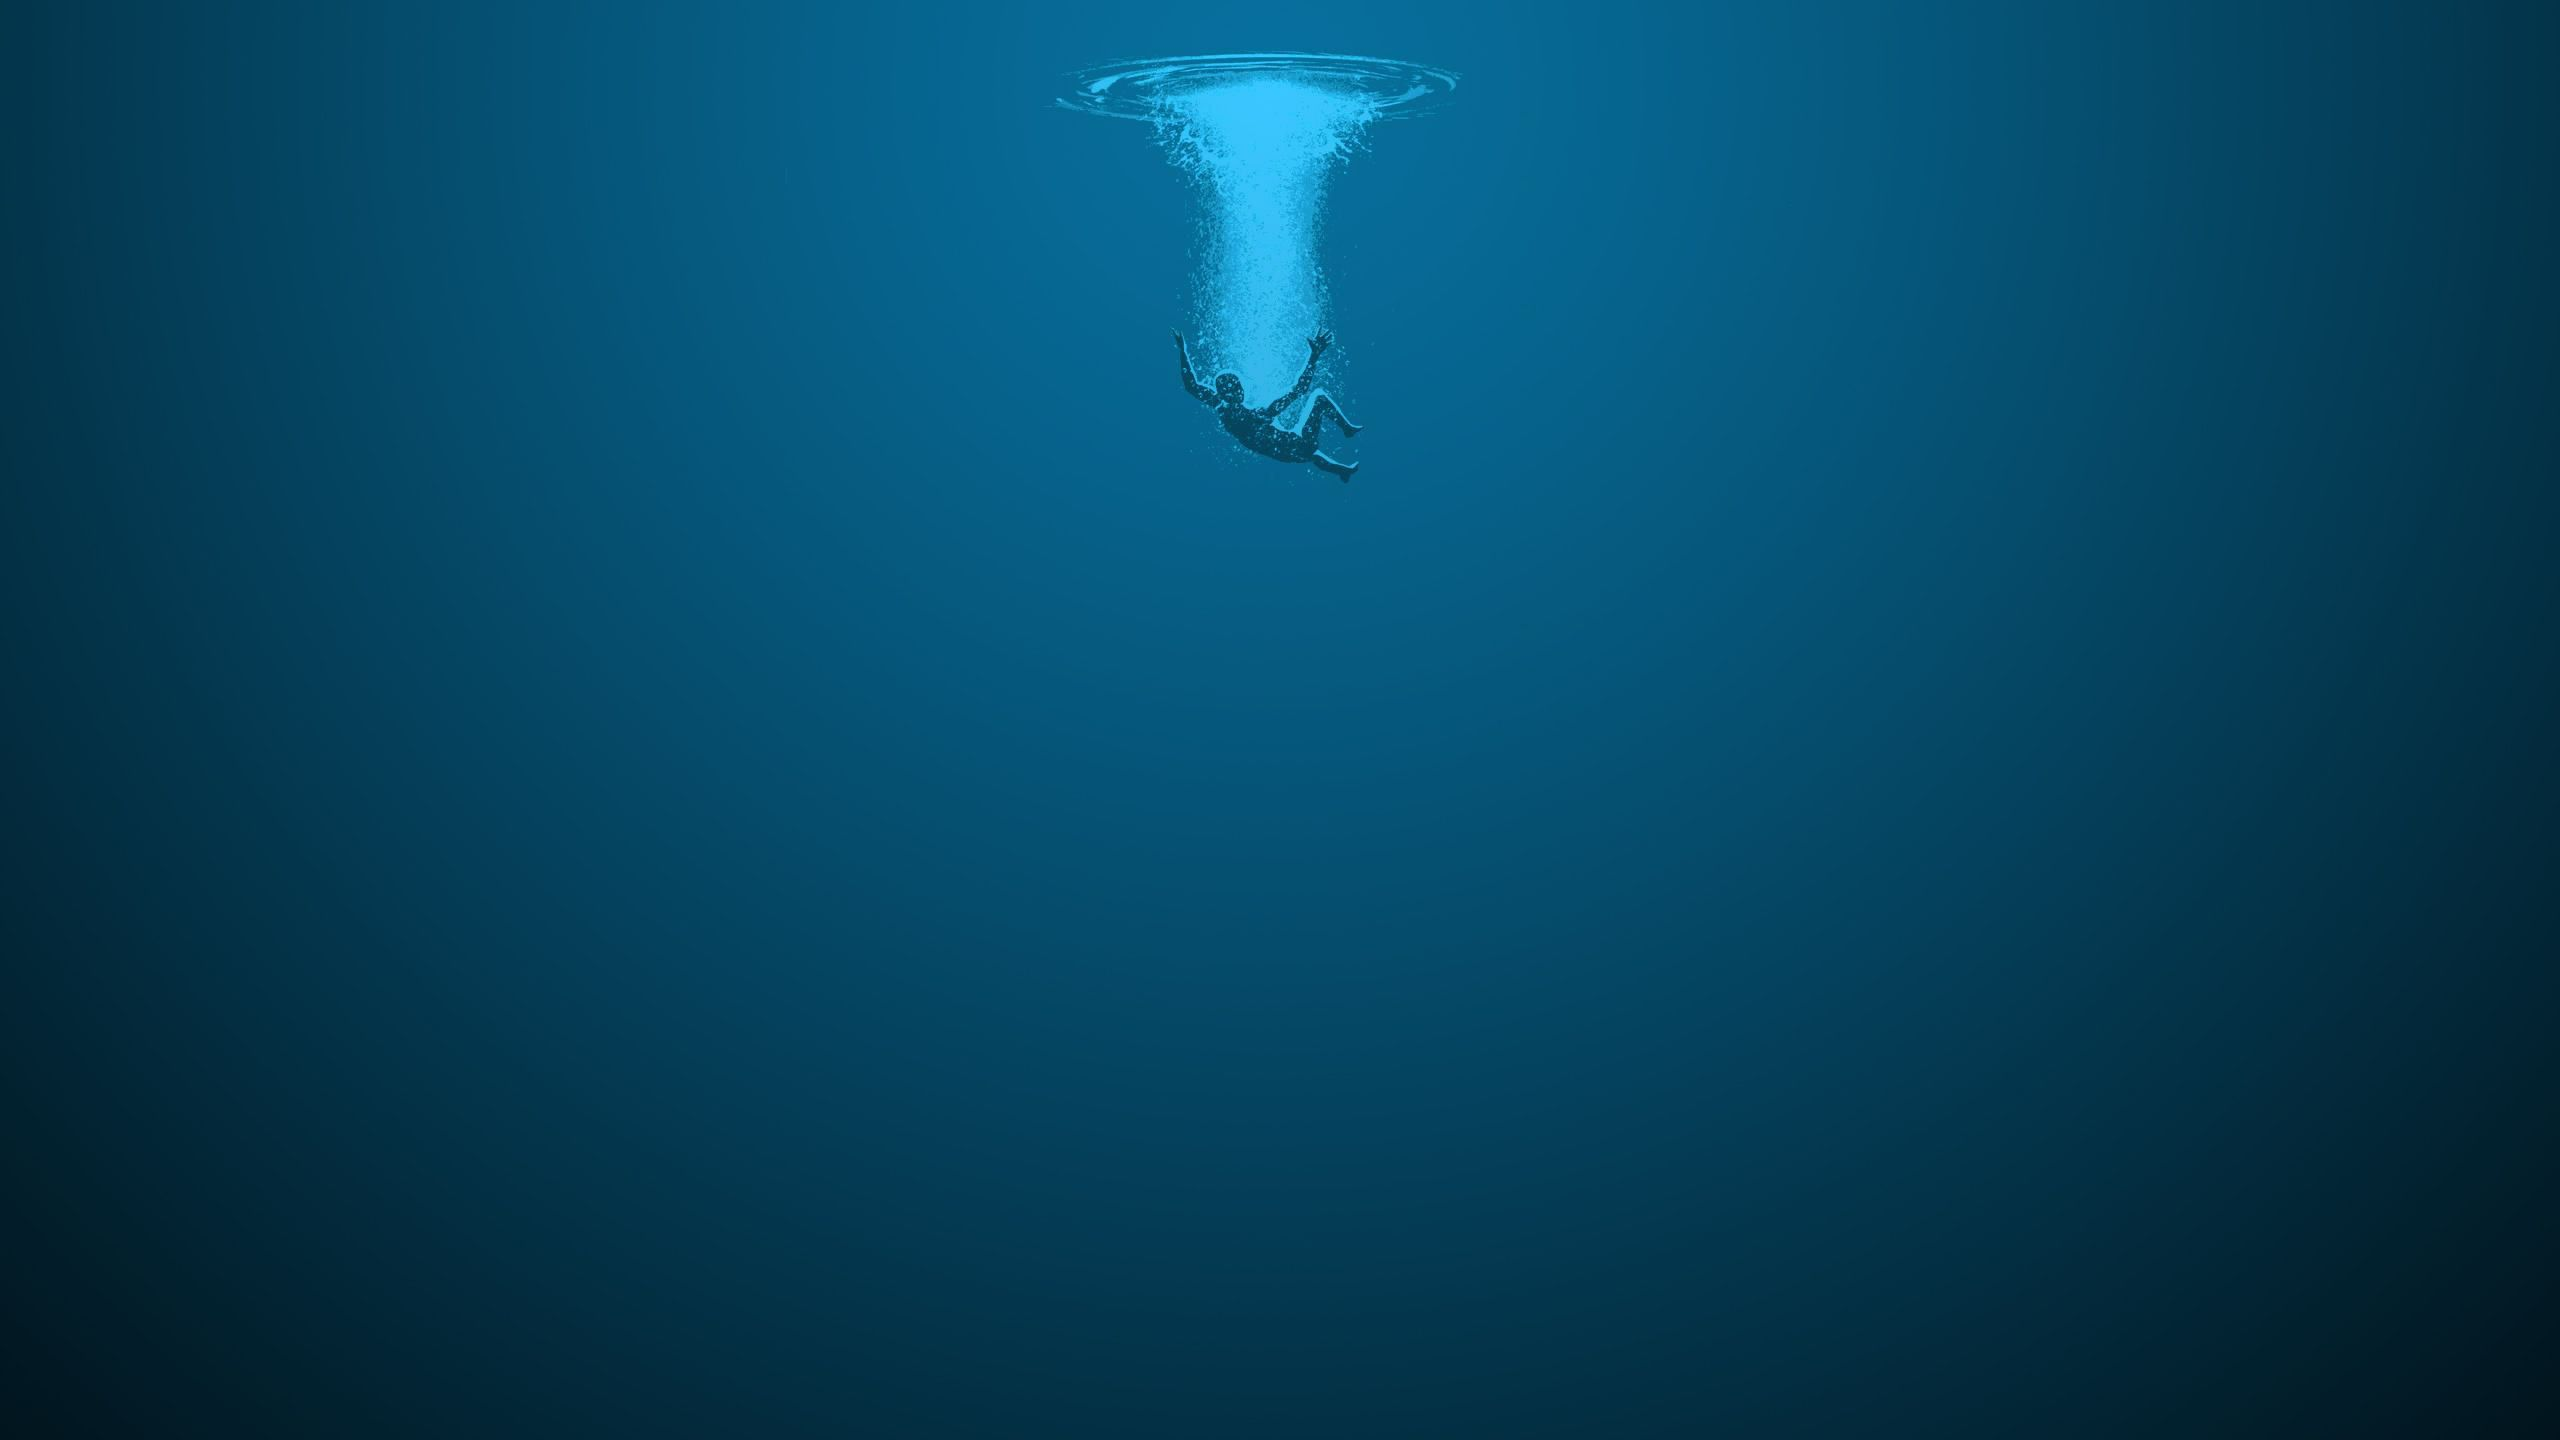 abyss artwork drowning lonely minimalistic wallpaper